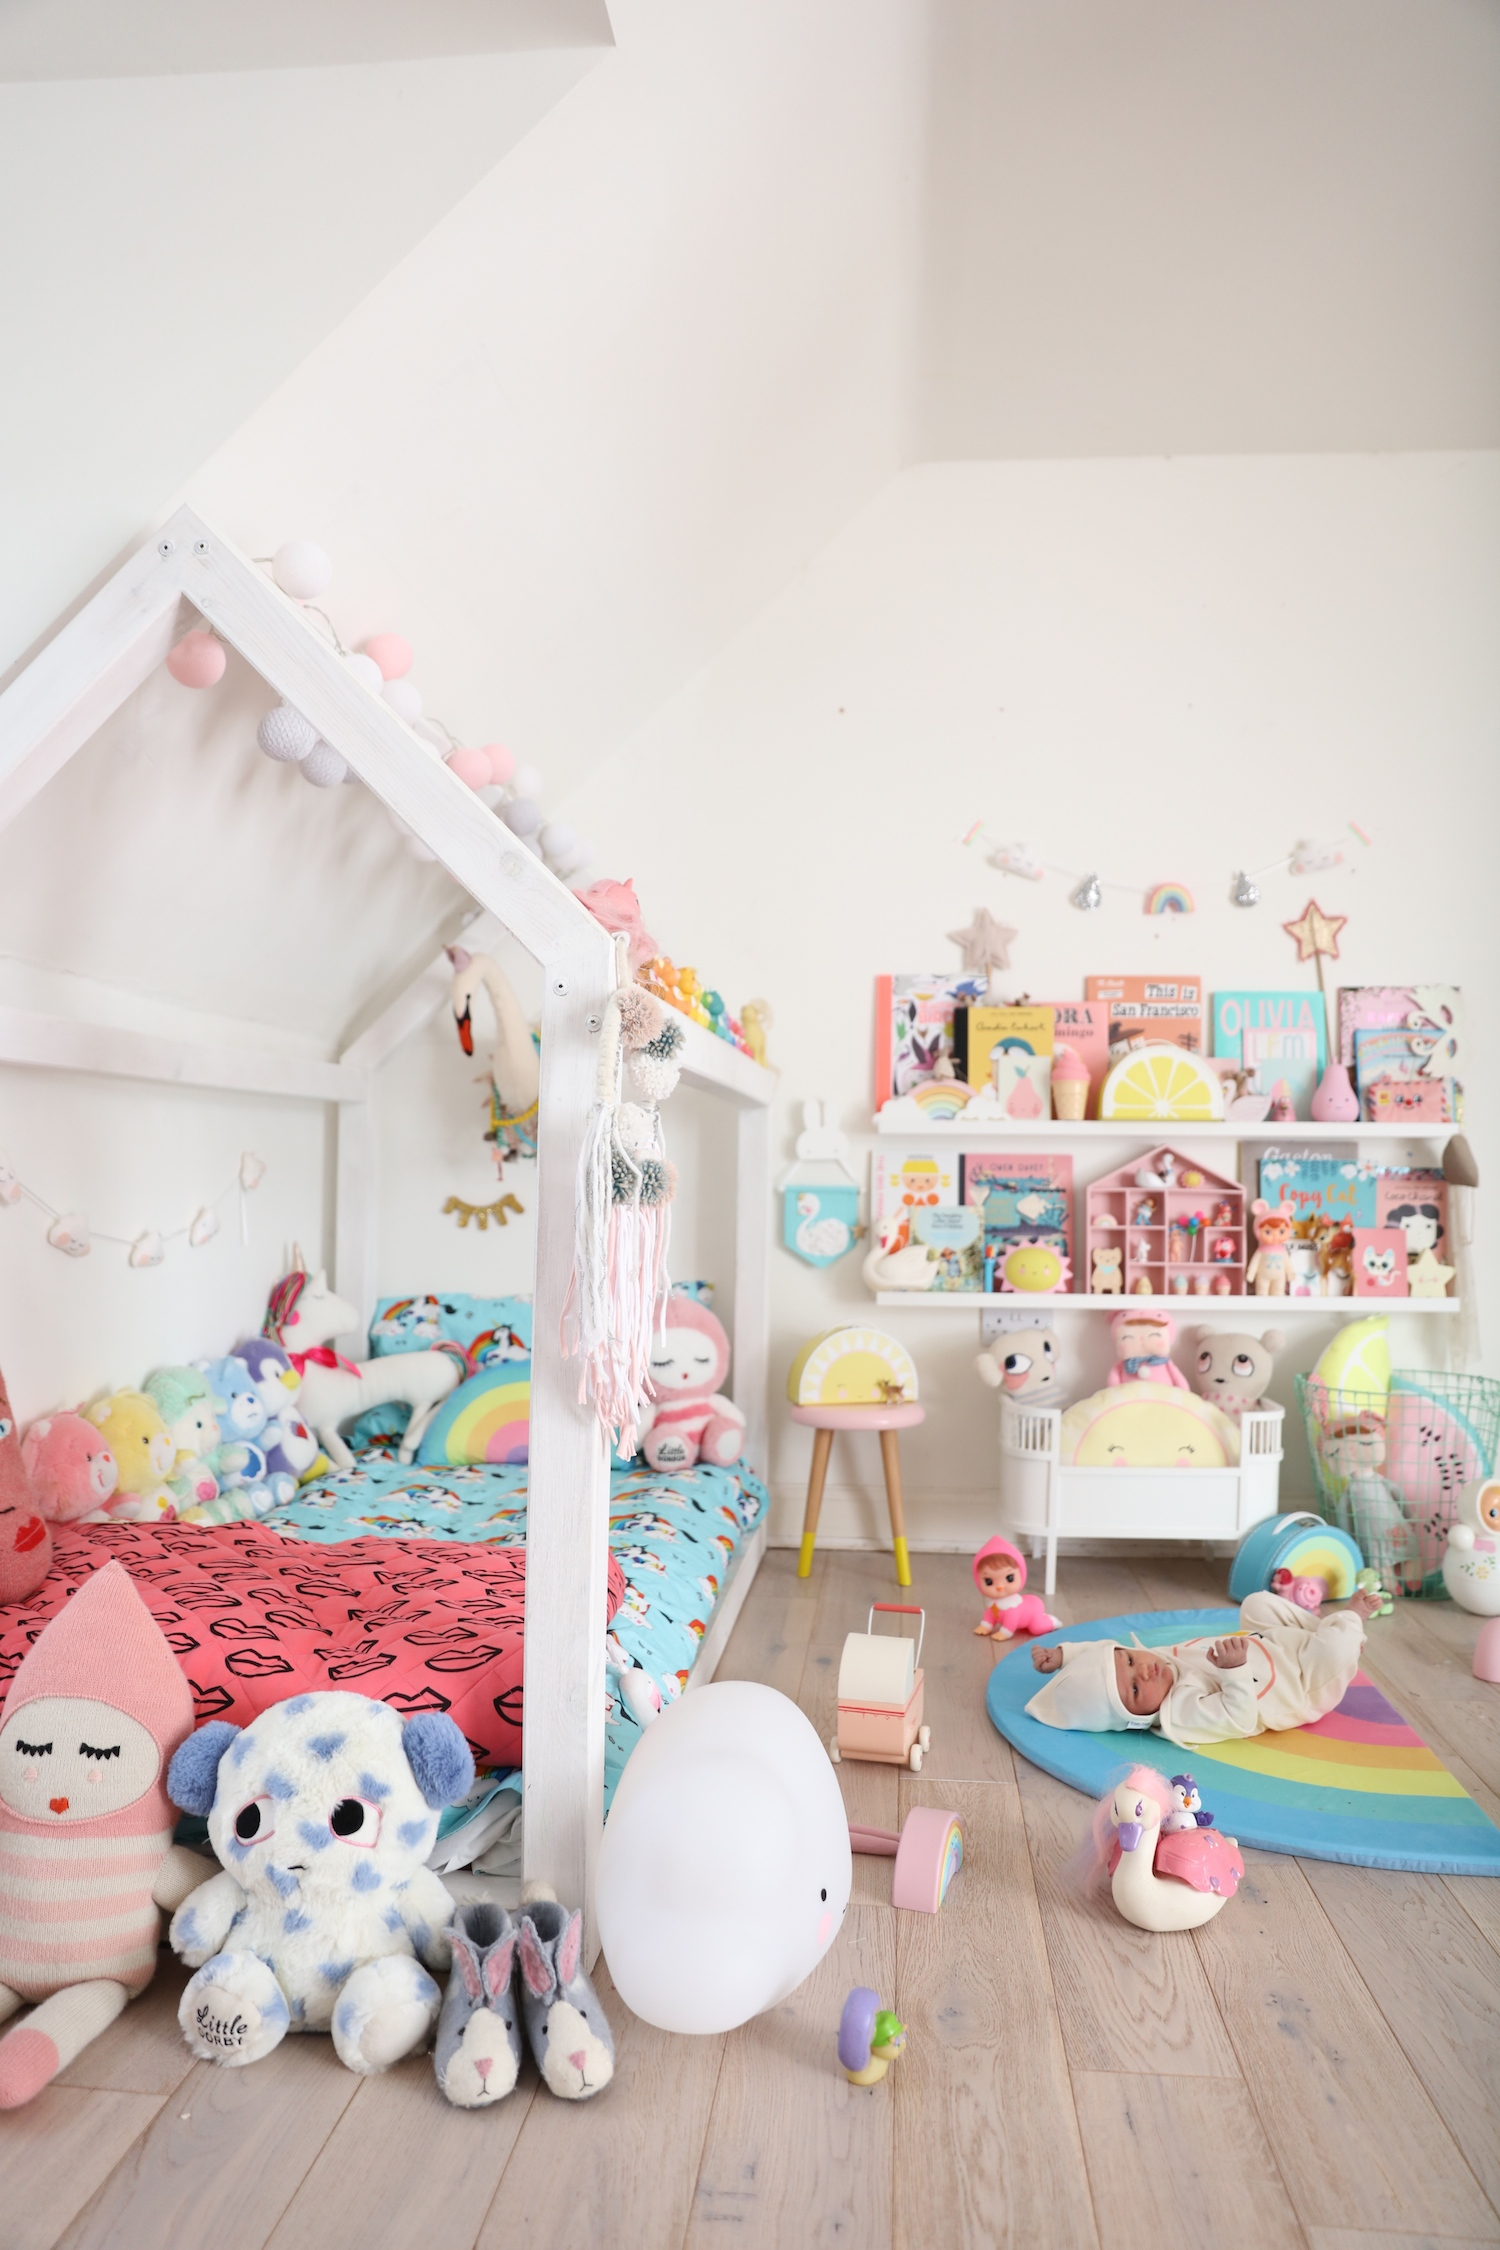 chloeuberkid_girls_bedroom_house_bed